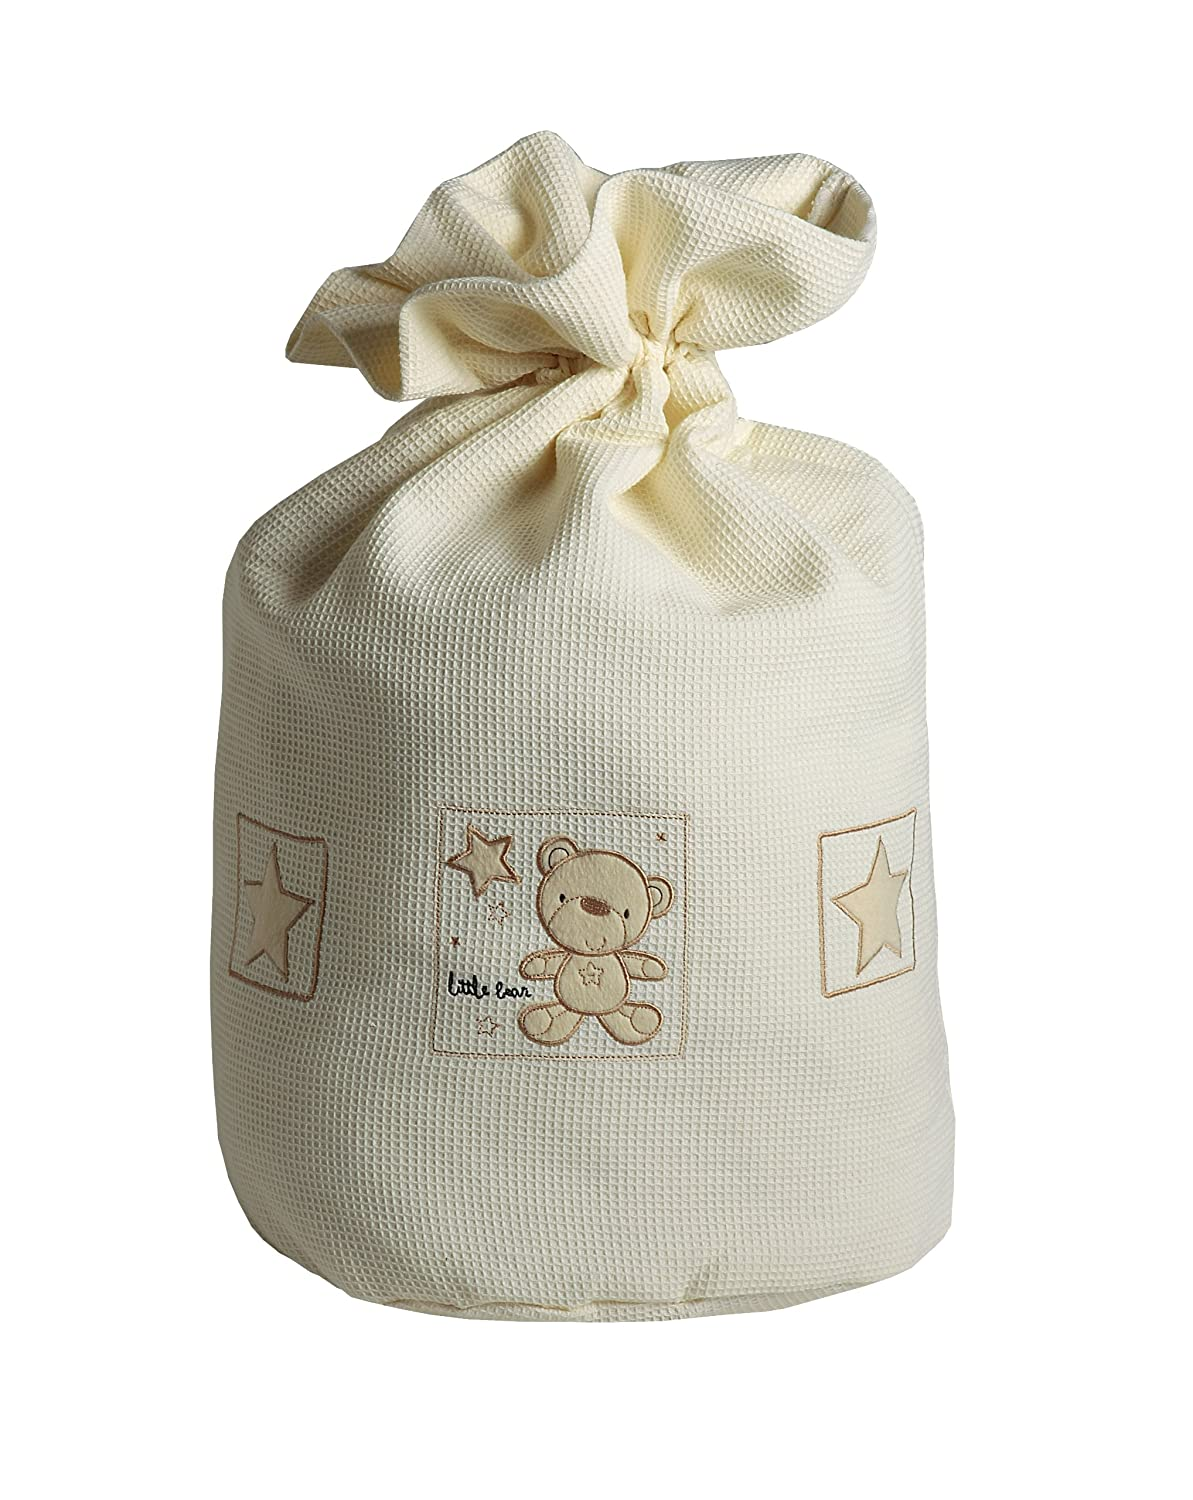 Baby Elegance Star Ted Laundry Bag (Cream) 3124